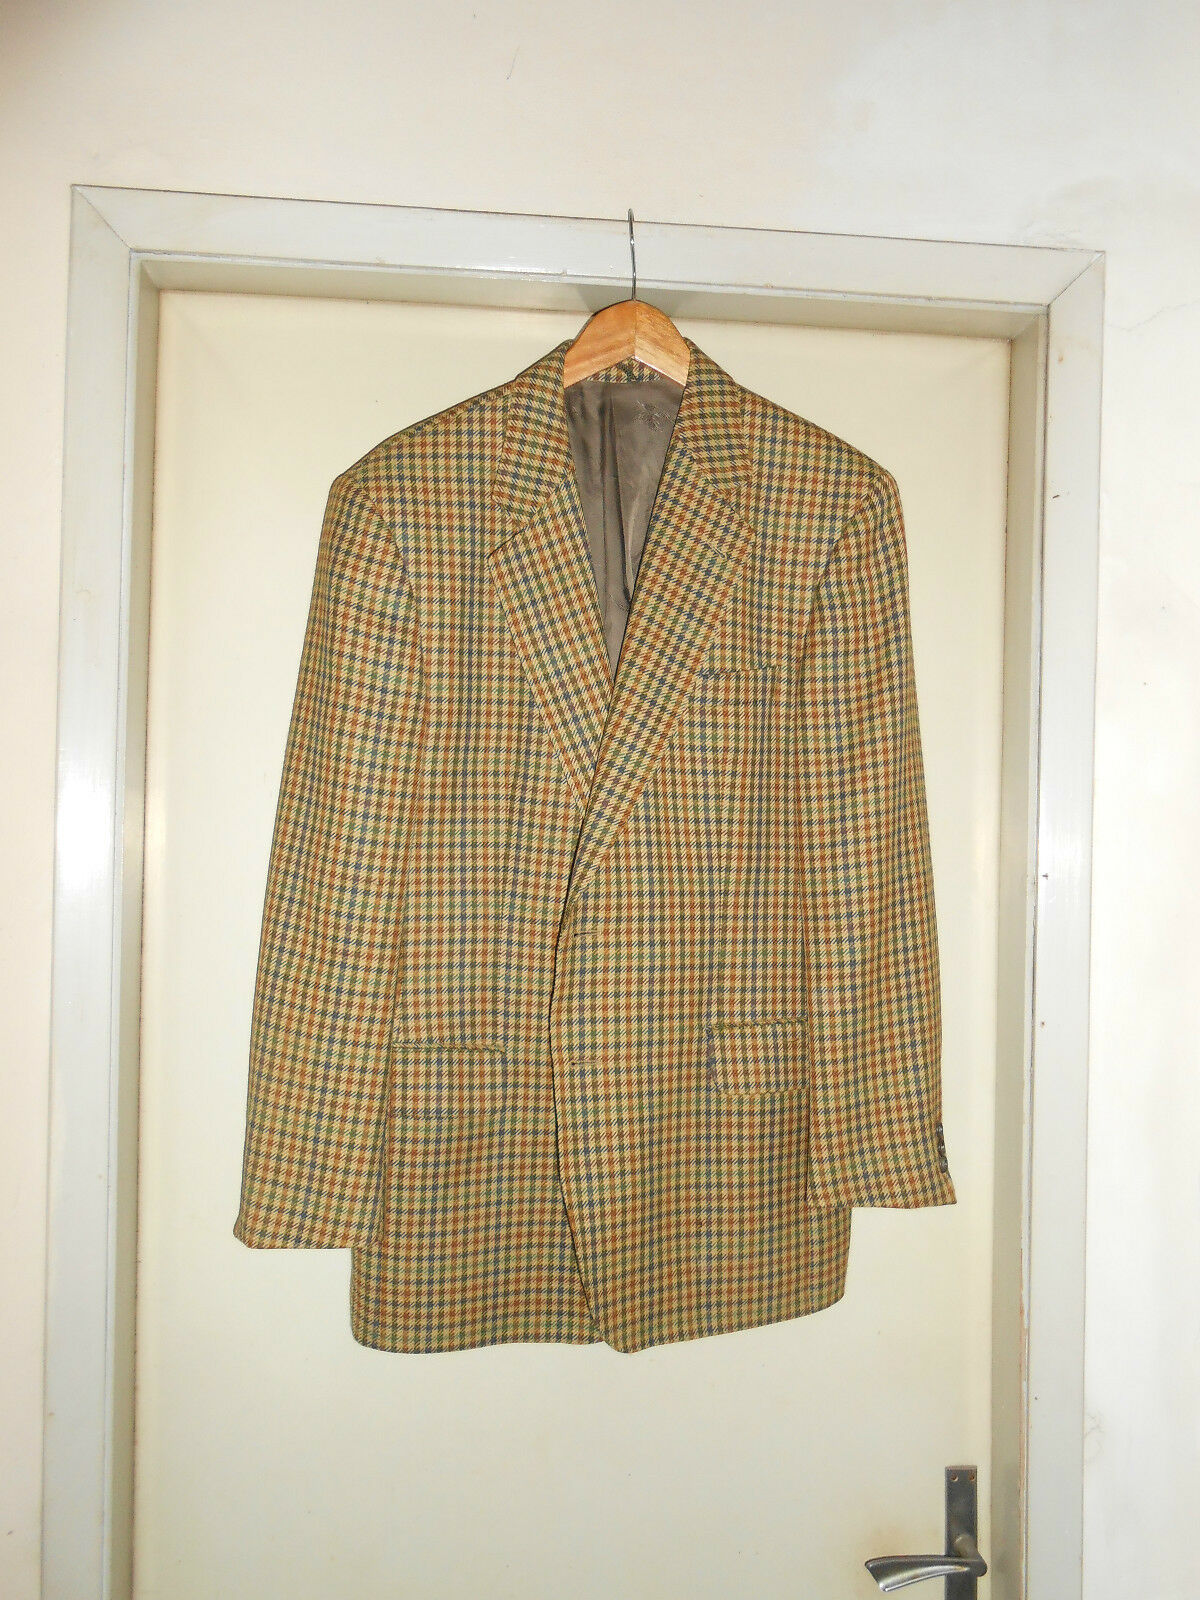 Giacca jacket BURBERRY in Lana Wool da herren Man NEW Größe 50 Made In U.K.